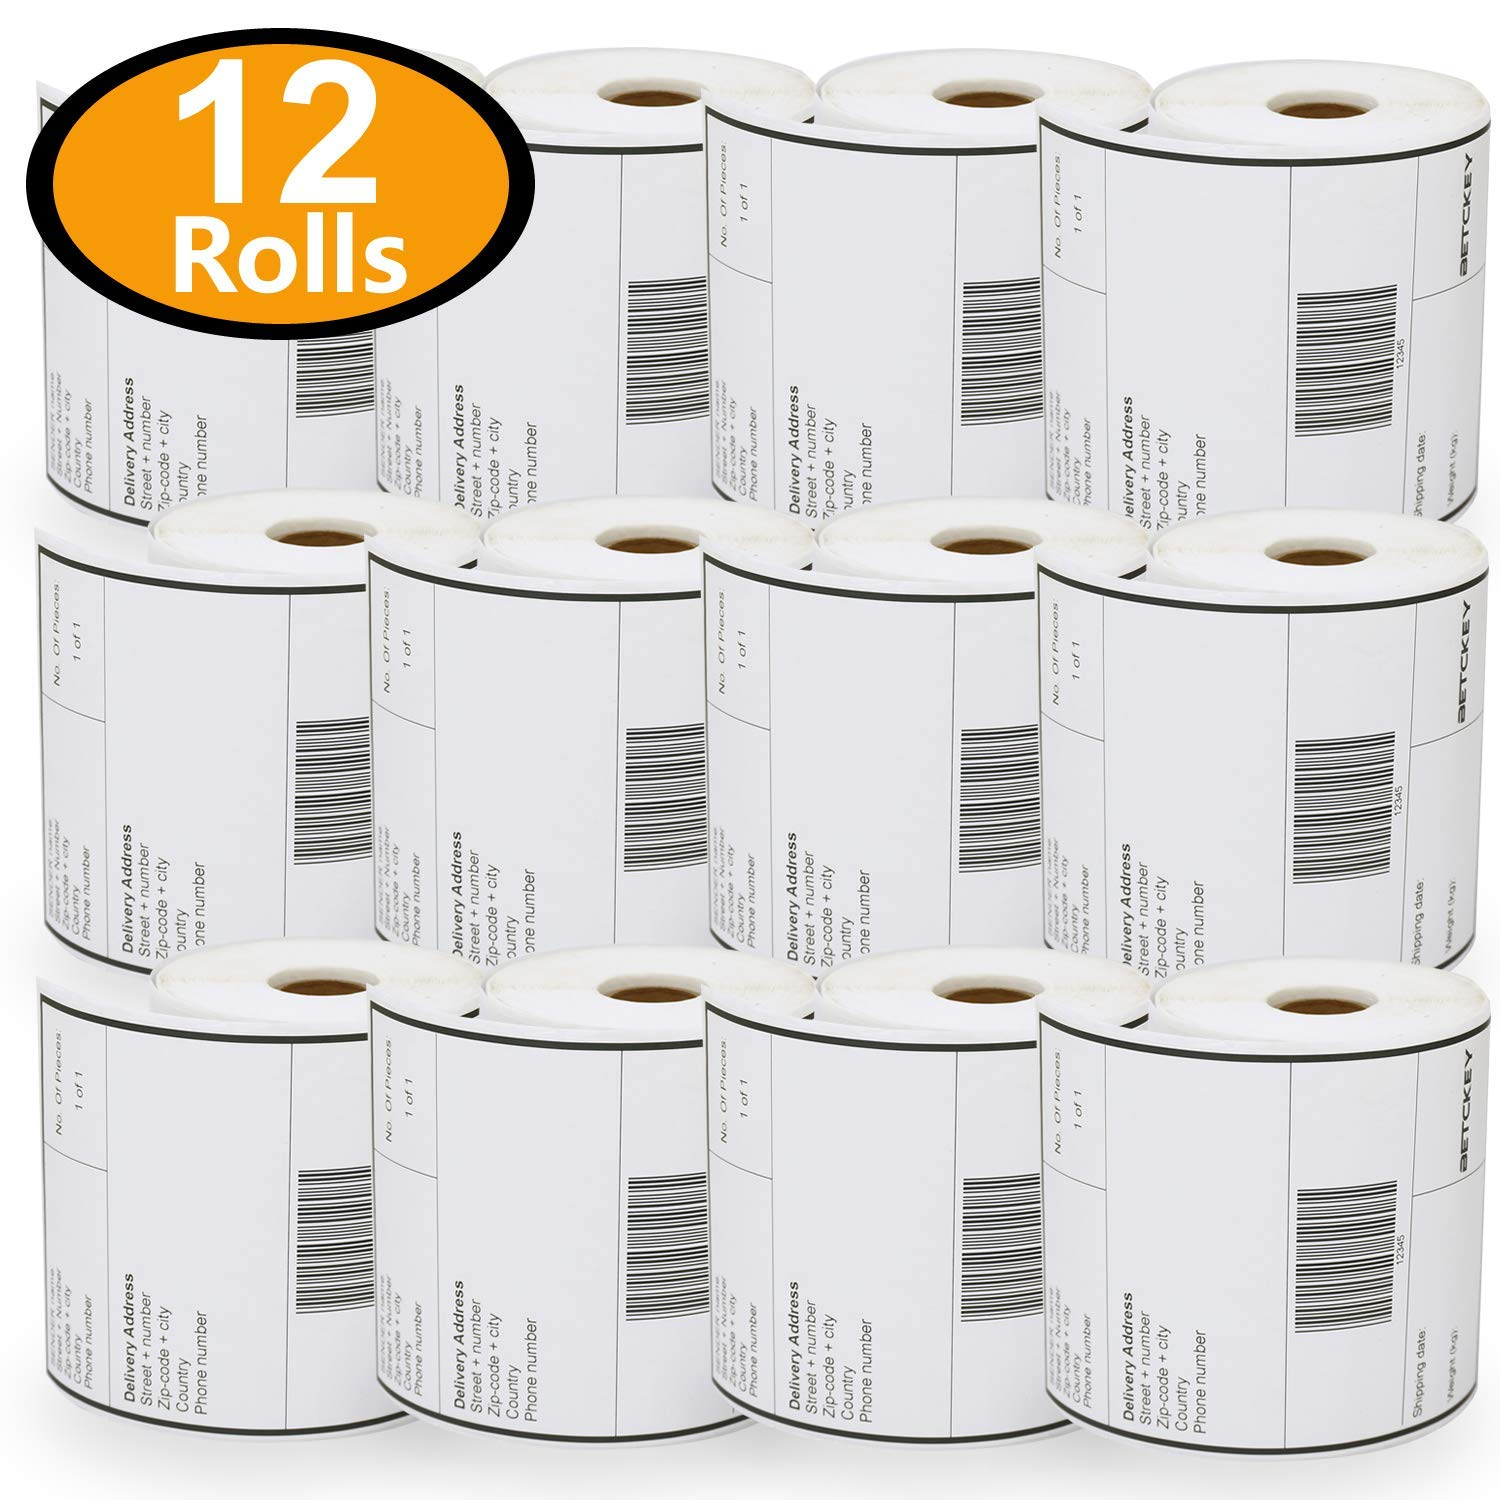 12 Rolls 4'' x 6'' Direct Thermal Printing Blank Shipping Labels for Zebra 2844 Zp-450 Zp-500 Zp-505,250 Labels per Roll